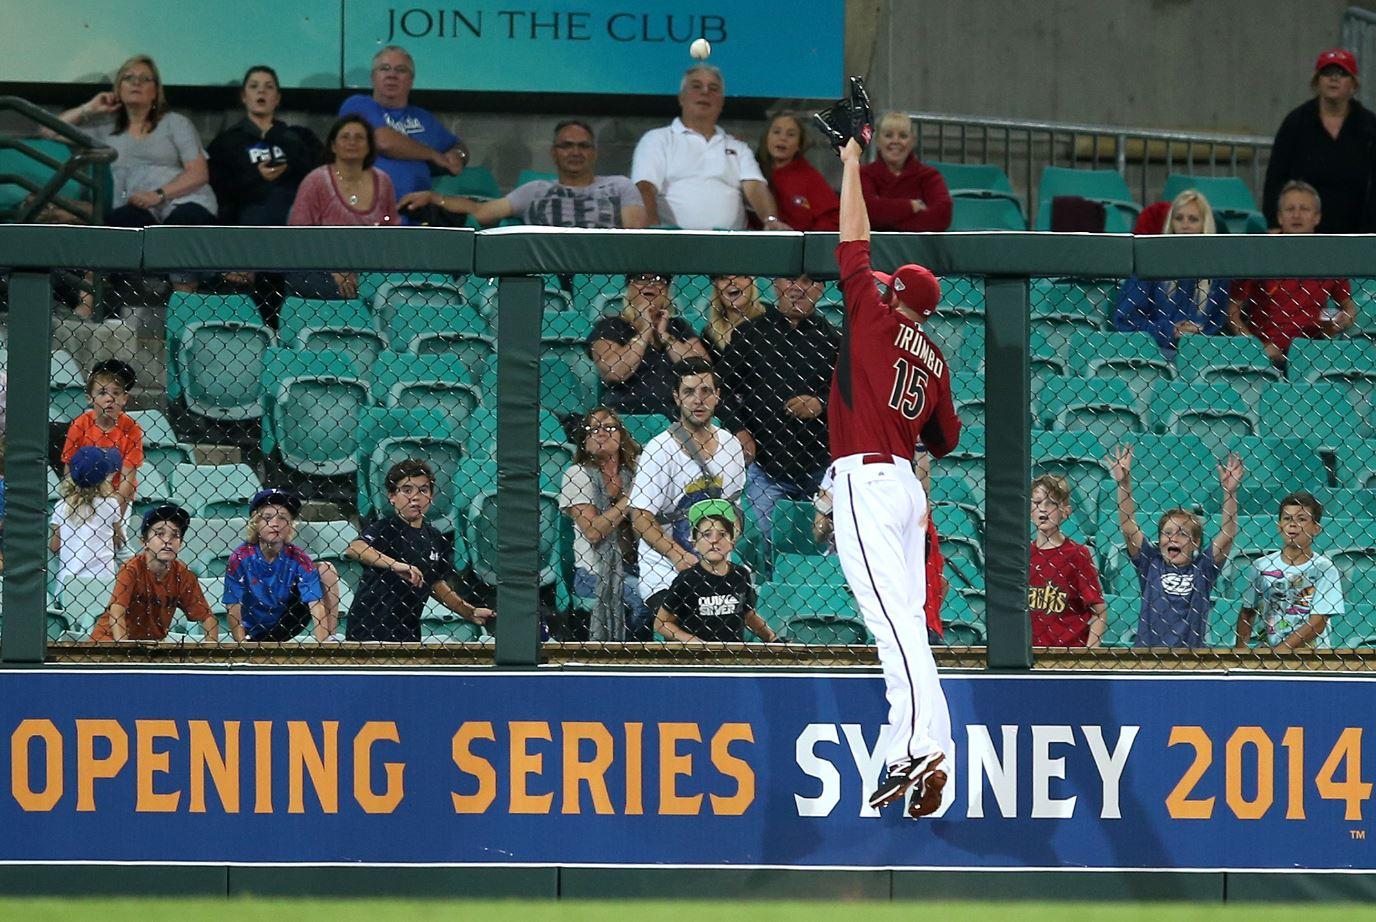 The Arizona Diamondbacks' Mark Trumbo jumps in an attempt to catch a home run ball from Team Australia's Australia's Tim Kennelly during their exhibition baseball game at the Sydney Cricket ground